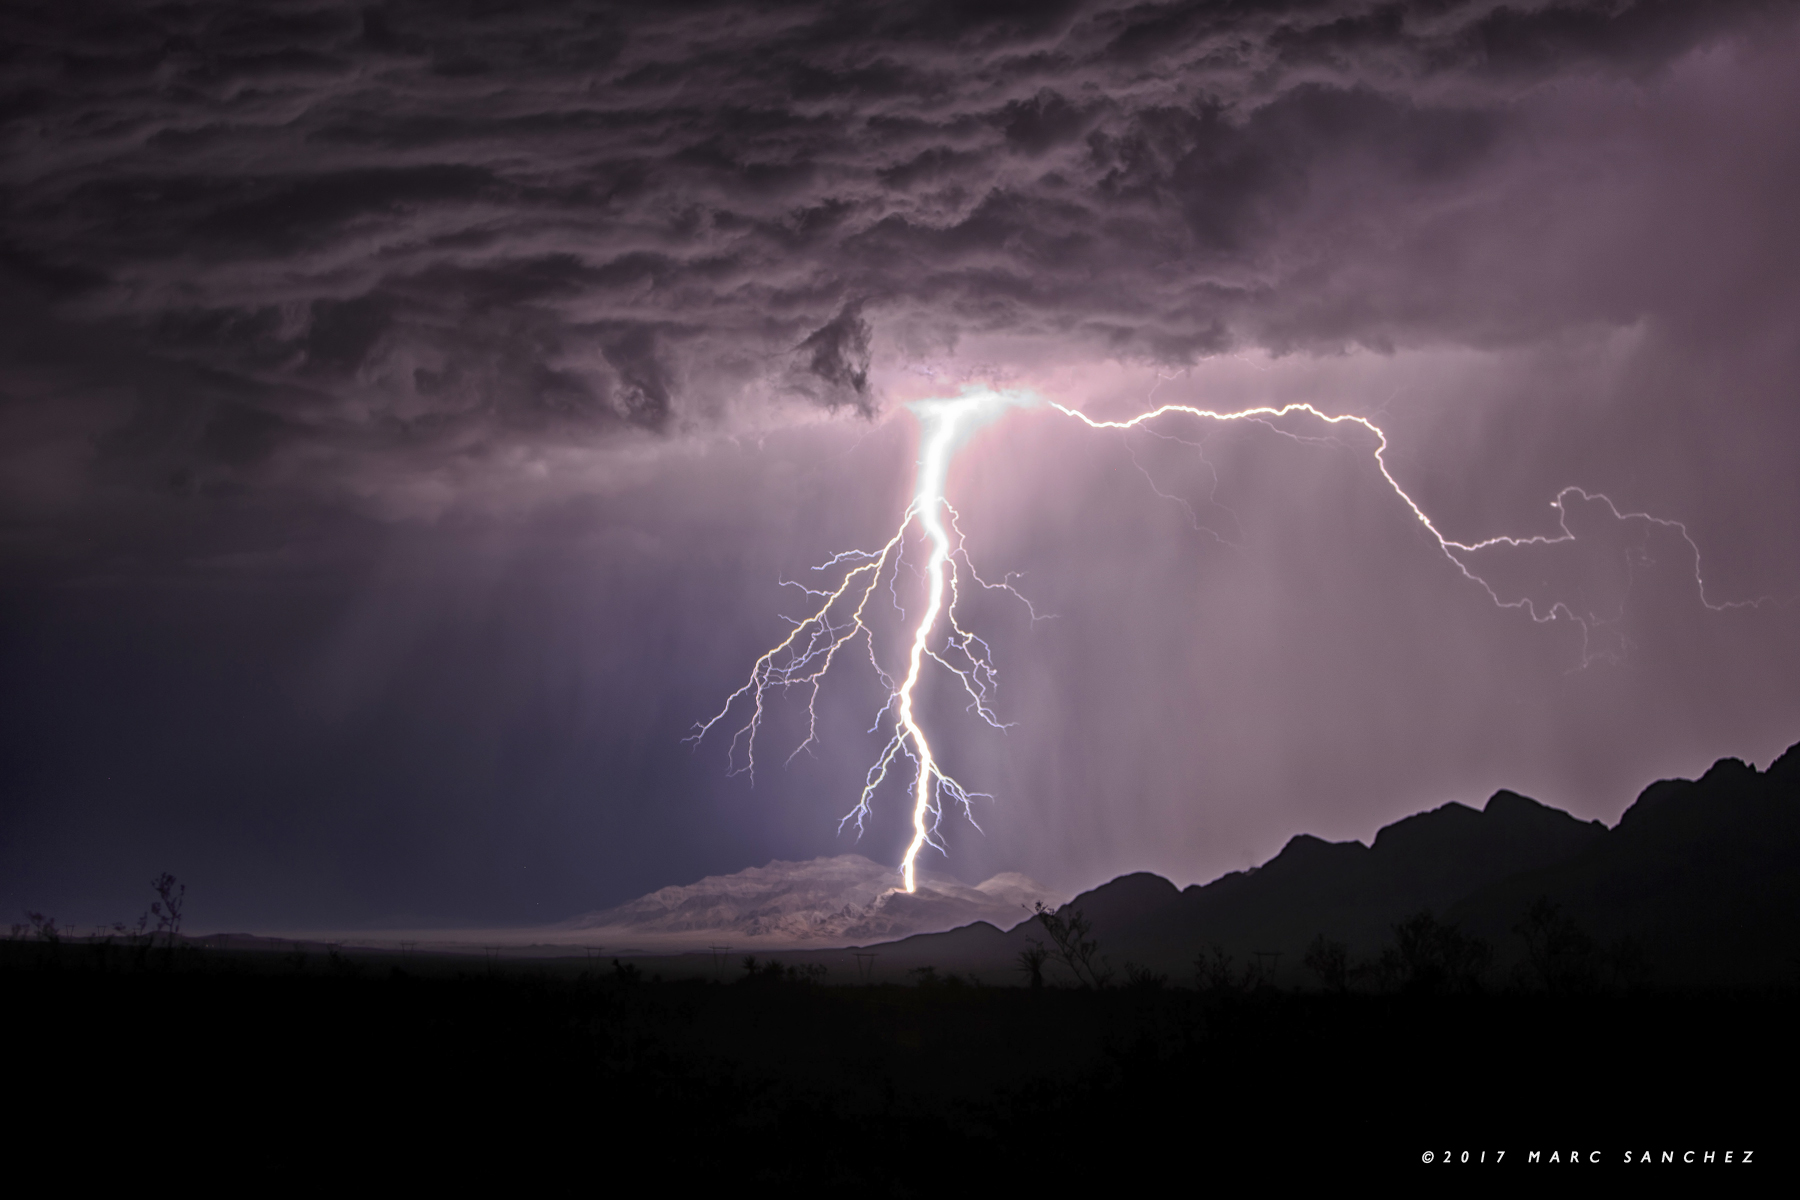 MOAPA, NV - JULY 12: A thunderstorm intensifies near the Moapa Indian Reservation on July 12, 2017.  (Photo by Marc Sanchez)